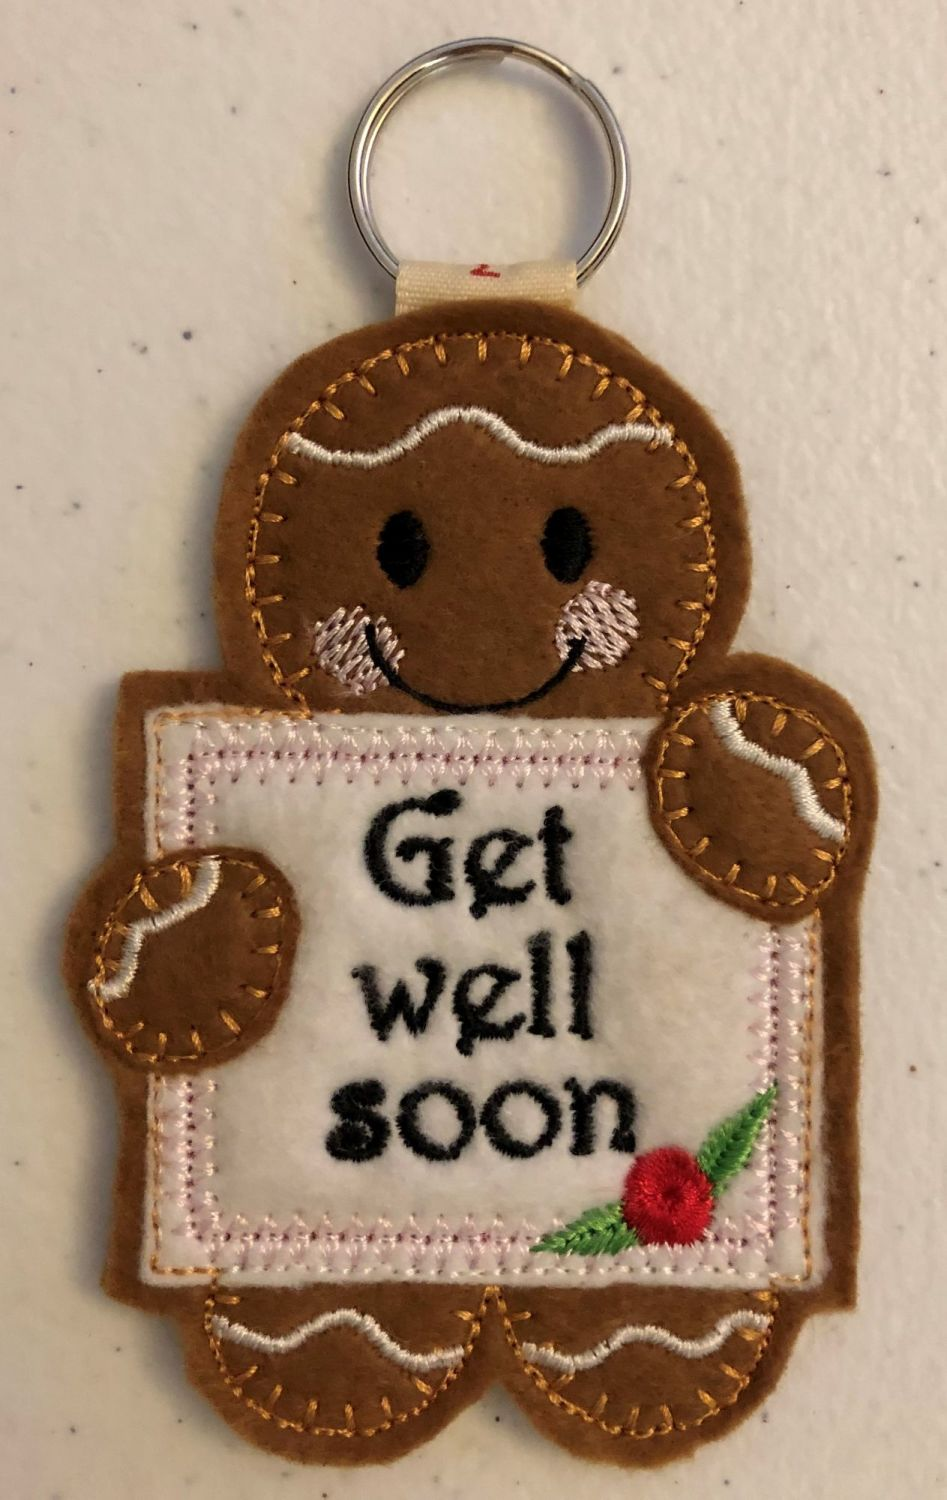 Messages - Get Well Soon